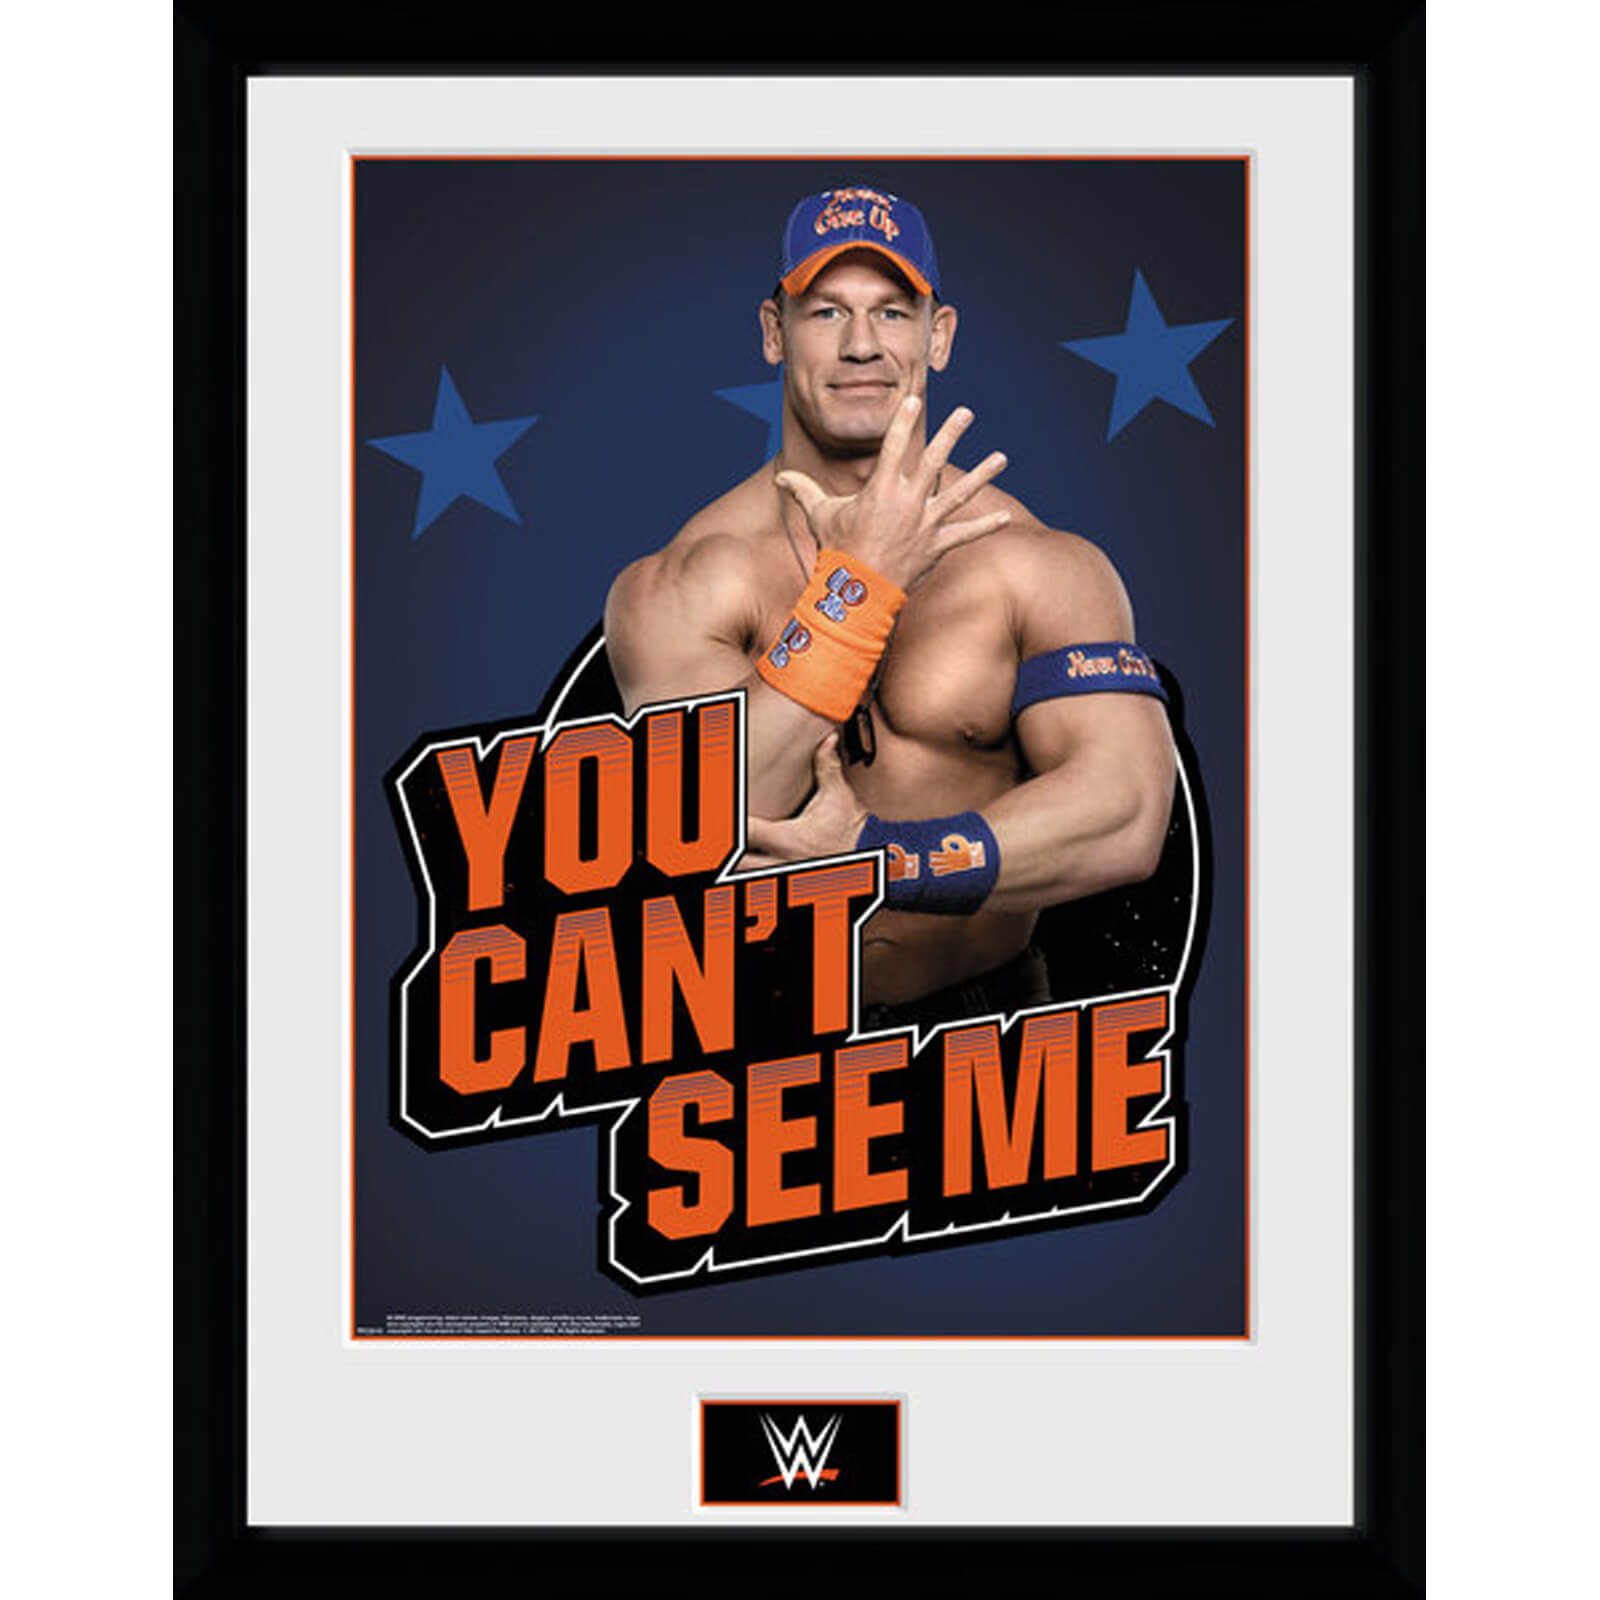 WWE Cena YCSM 12 x 16 Inches Framed Photograph